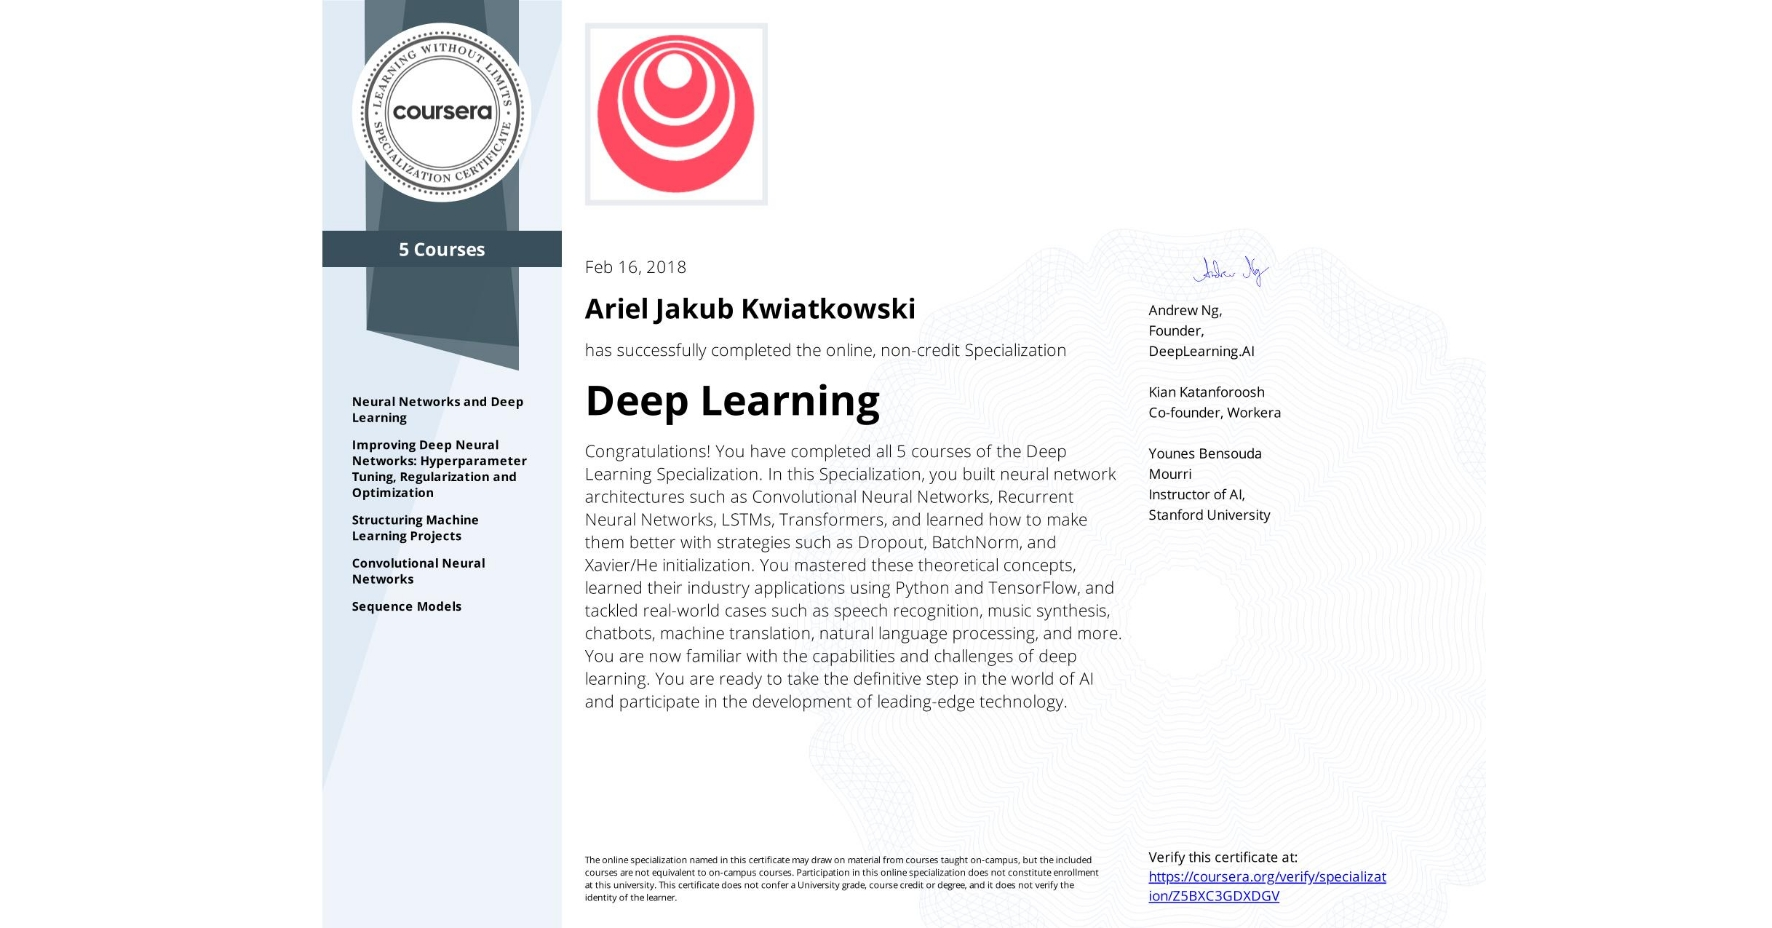 View certificate for Ariel Jakub Kwiatkowski, Deep Learning, offered through Coursera. The Deep Learning Specialization is designed to prepare learners to participate in the development of cutting-edge AI technology, and to understand the capability, the challenges, and the consequences of the rise of deep learning. Through five interconnected courses, learners develop a profound knowledge of the hottest AI algorithms, mastering deep learning from its foundations (neural networks) to its industry applications (Computer Vision, Natural Language Processing, Speech Recognition, etc.).